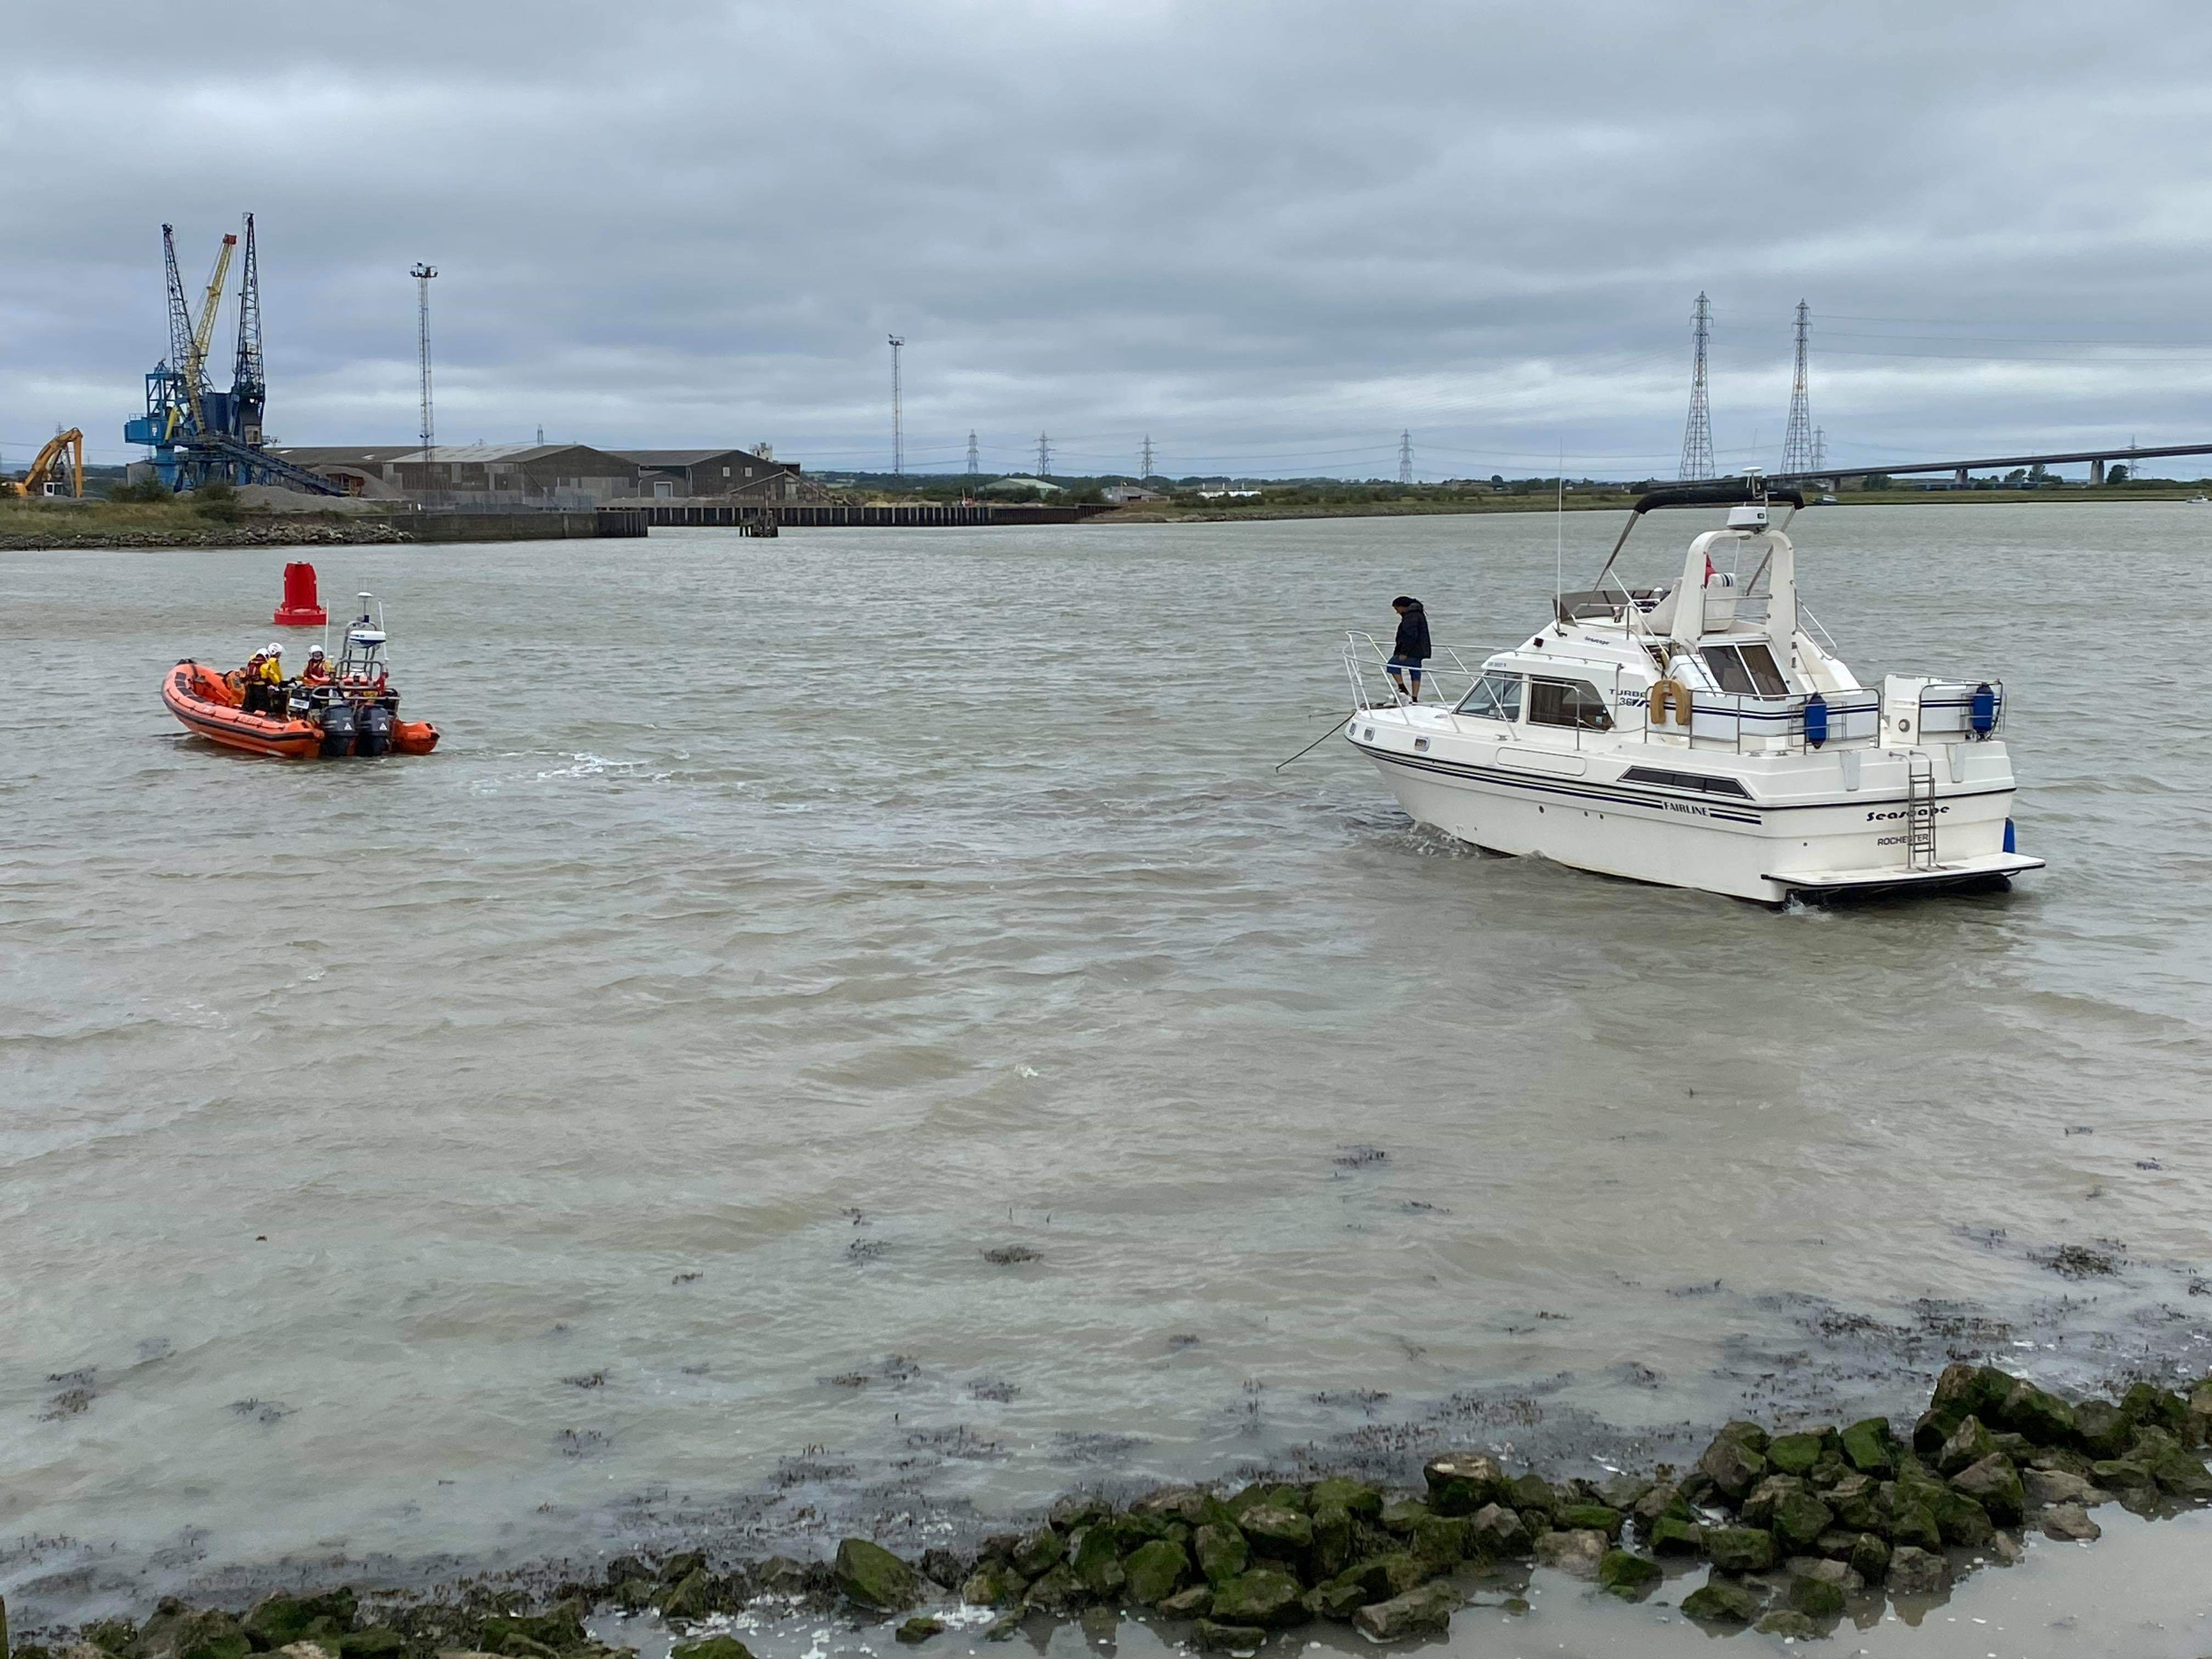 Whitstable lifeboat tows the 30-foot motor cruiser away from the sea wall on the Sheppey side of The Swale opposite Ridham Dock to a mooring after the craft got into difficulties on Friday afternoon and again on Saturday morning. Picture: James Crane/Sheppey Coastguard.